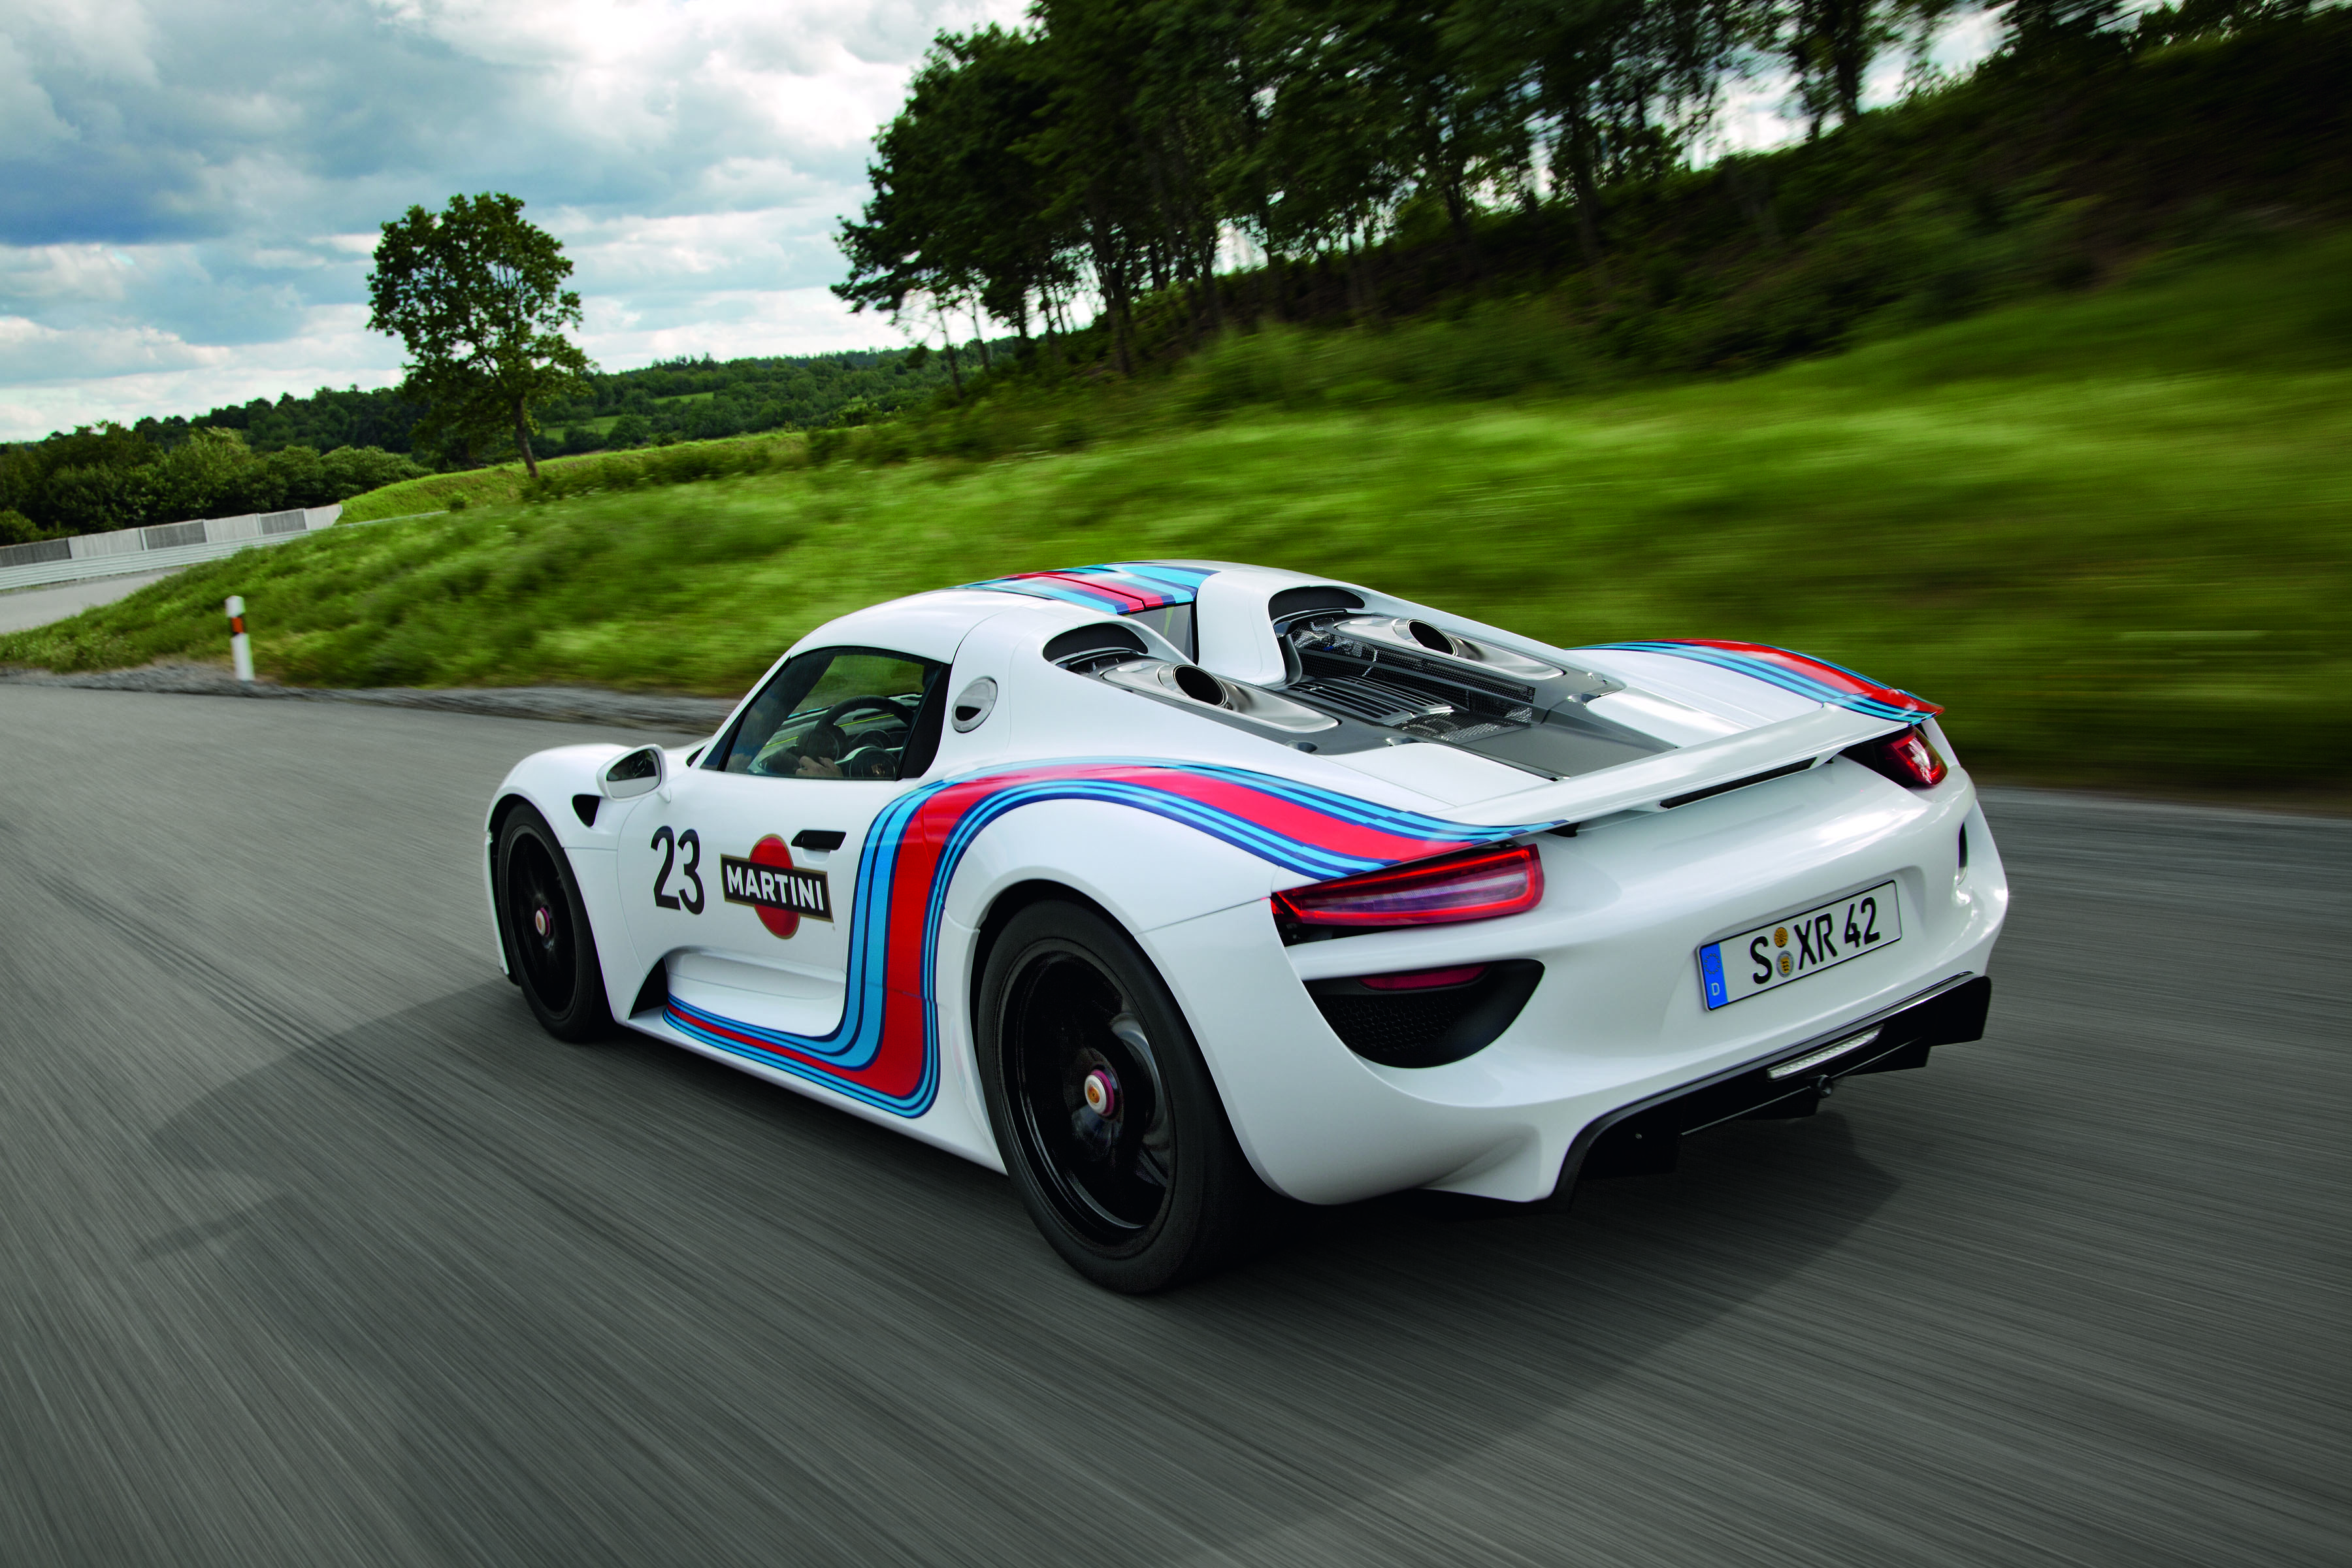 p12_0383_a4 Fabulous How Much Does the Porsche 918 Spyder Concept Cost In Real Racing 3 Cars Trend